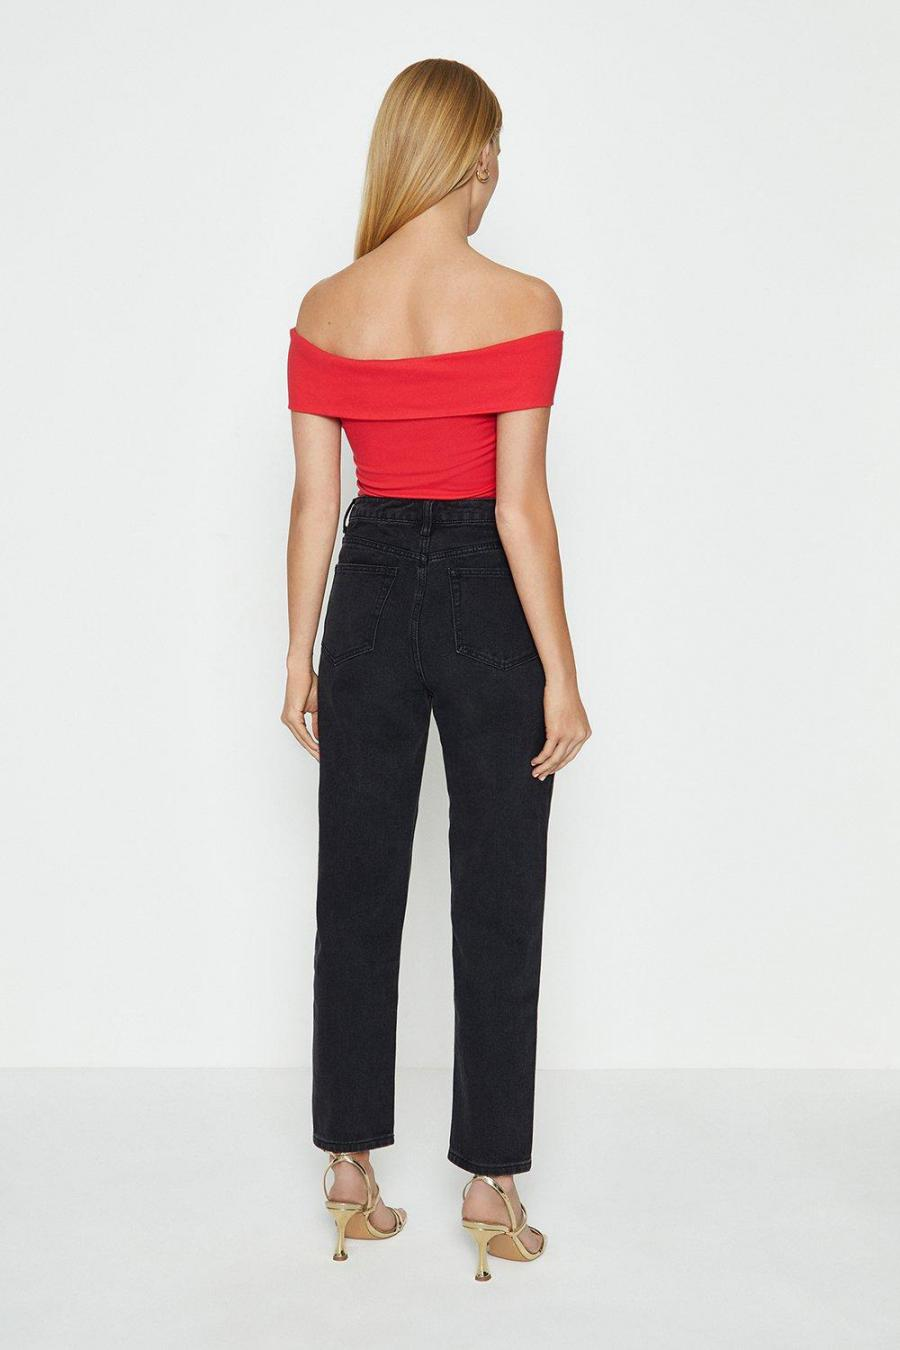 Coast Structured Tops | Womens Cross Front Ponte Top Red